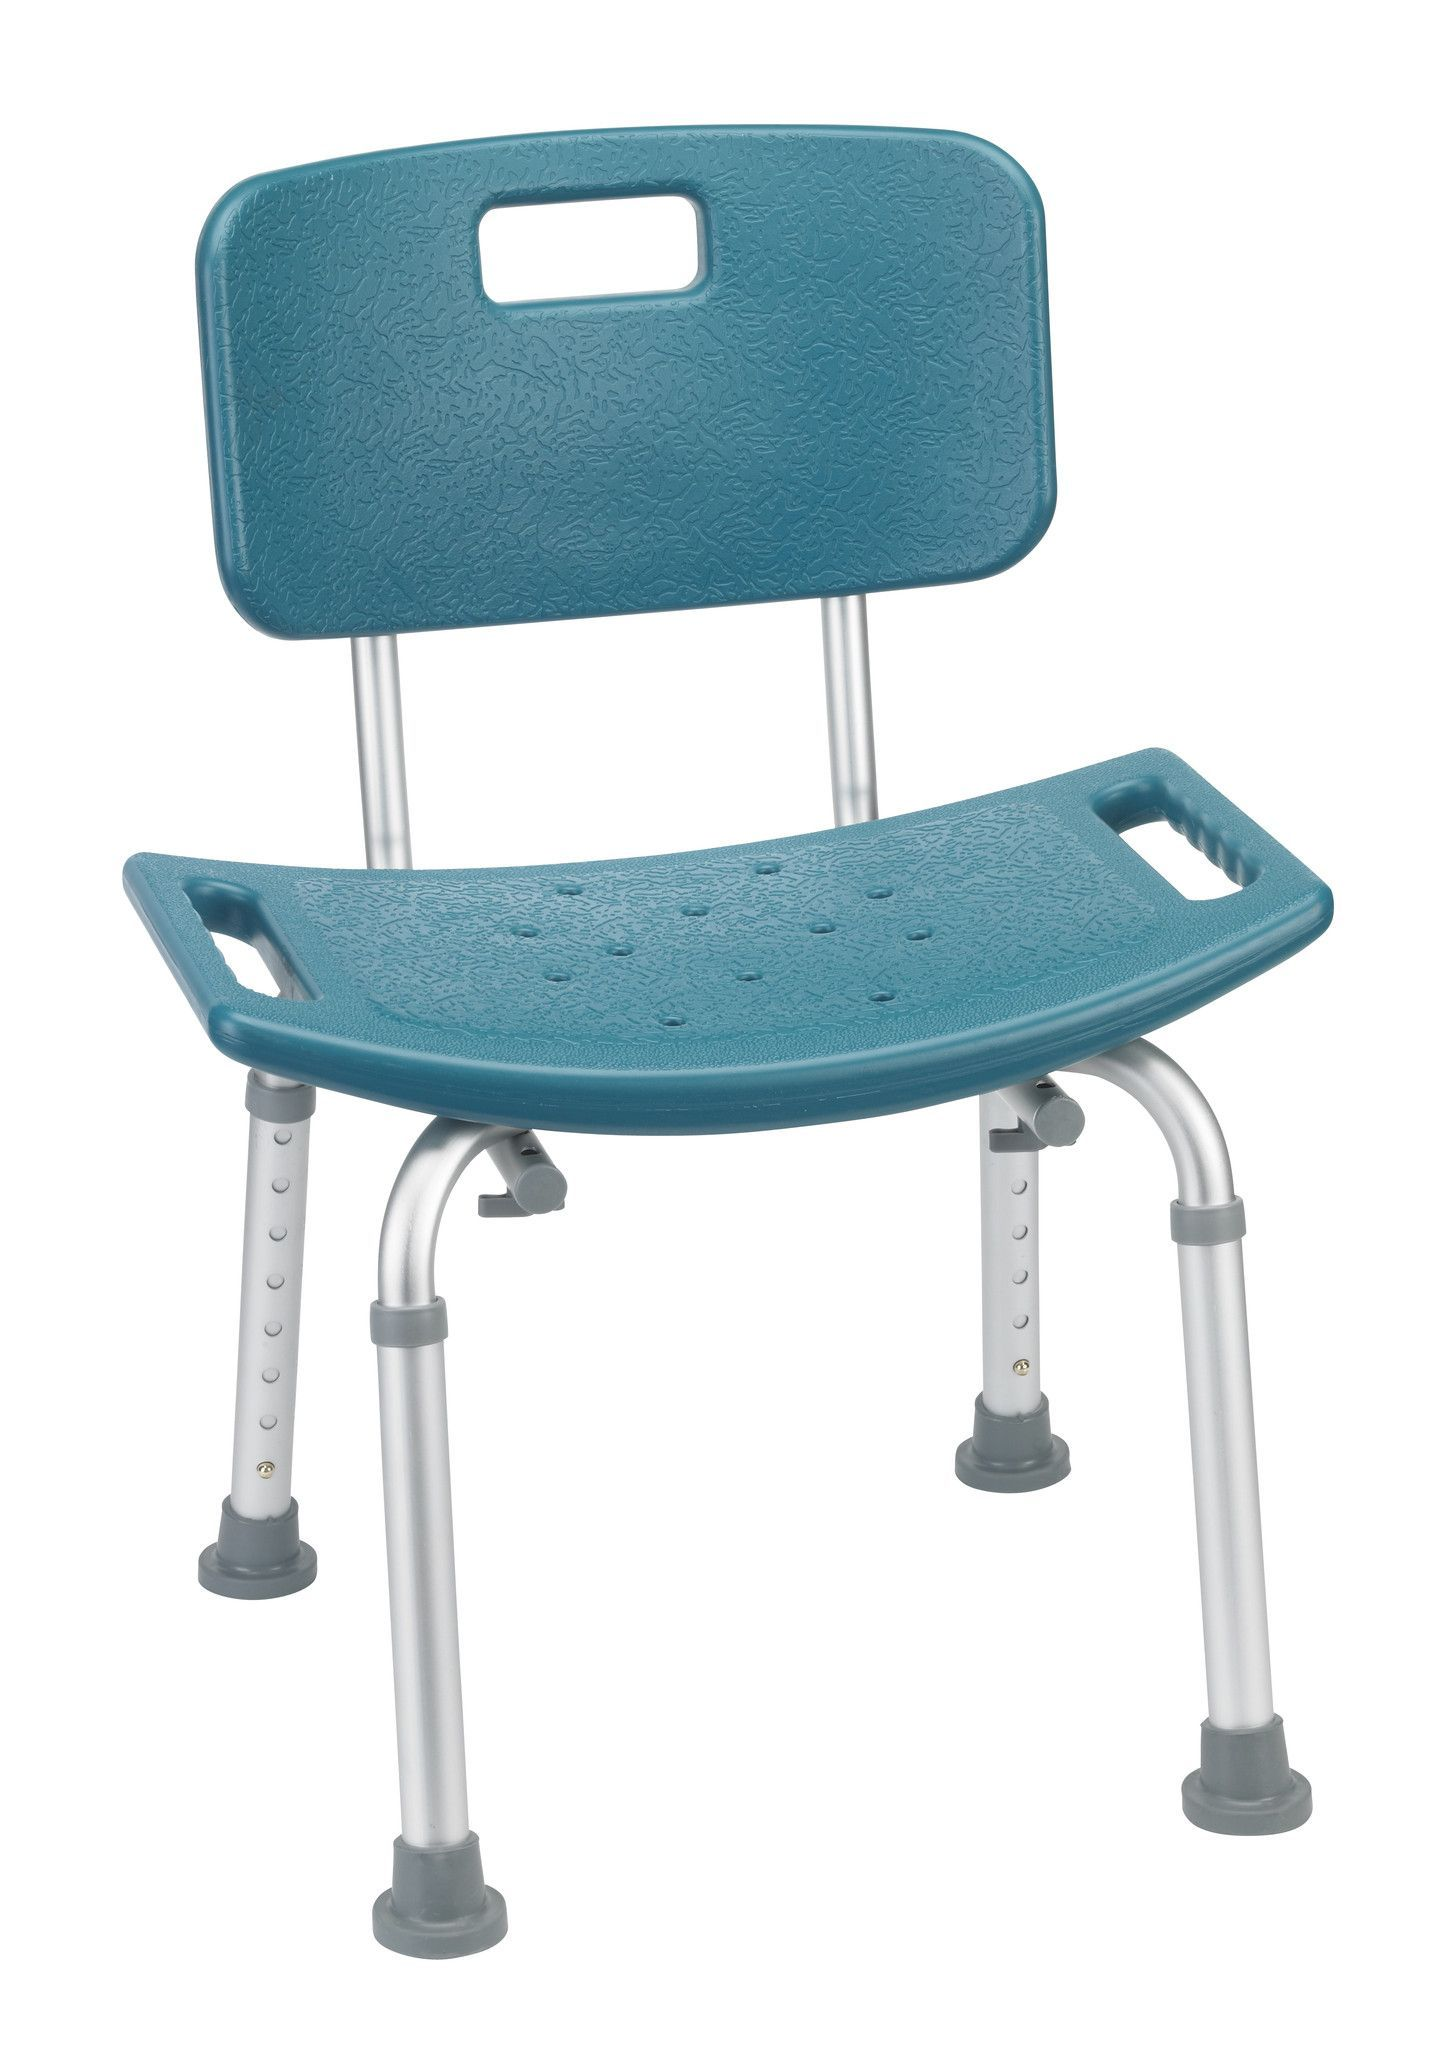 Drive Medical Shower Tub Bench Chair With Back Shower Tub Shower Chair Bathroom Safety